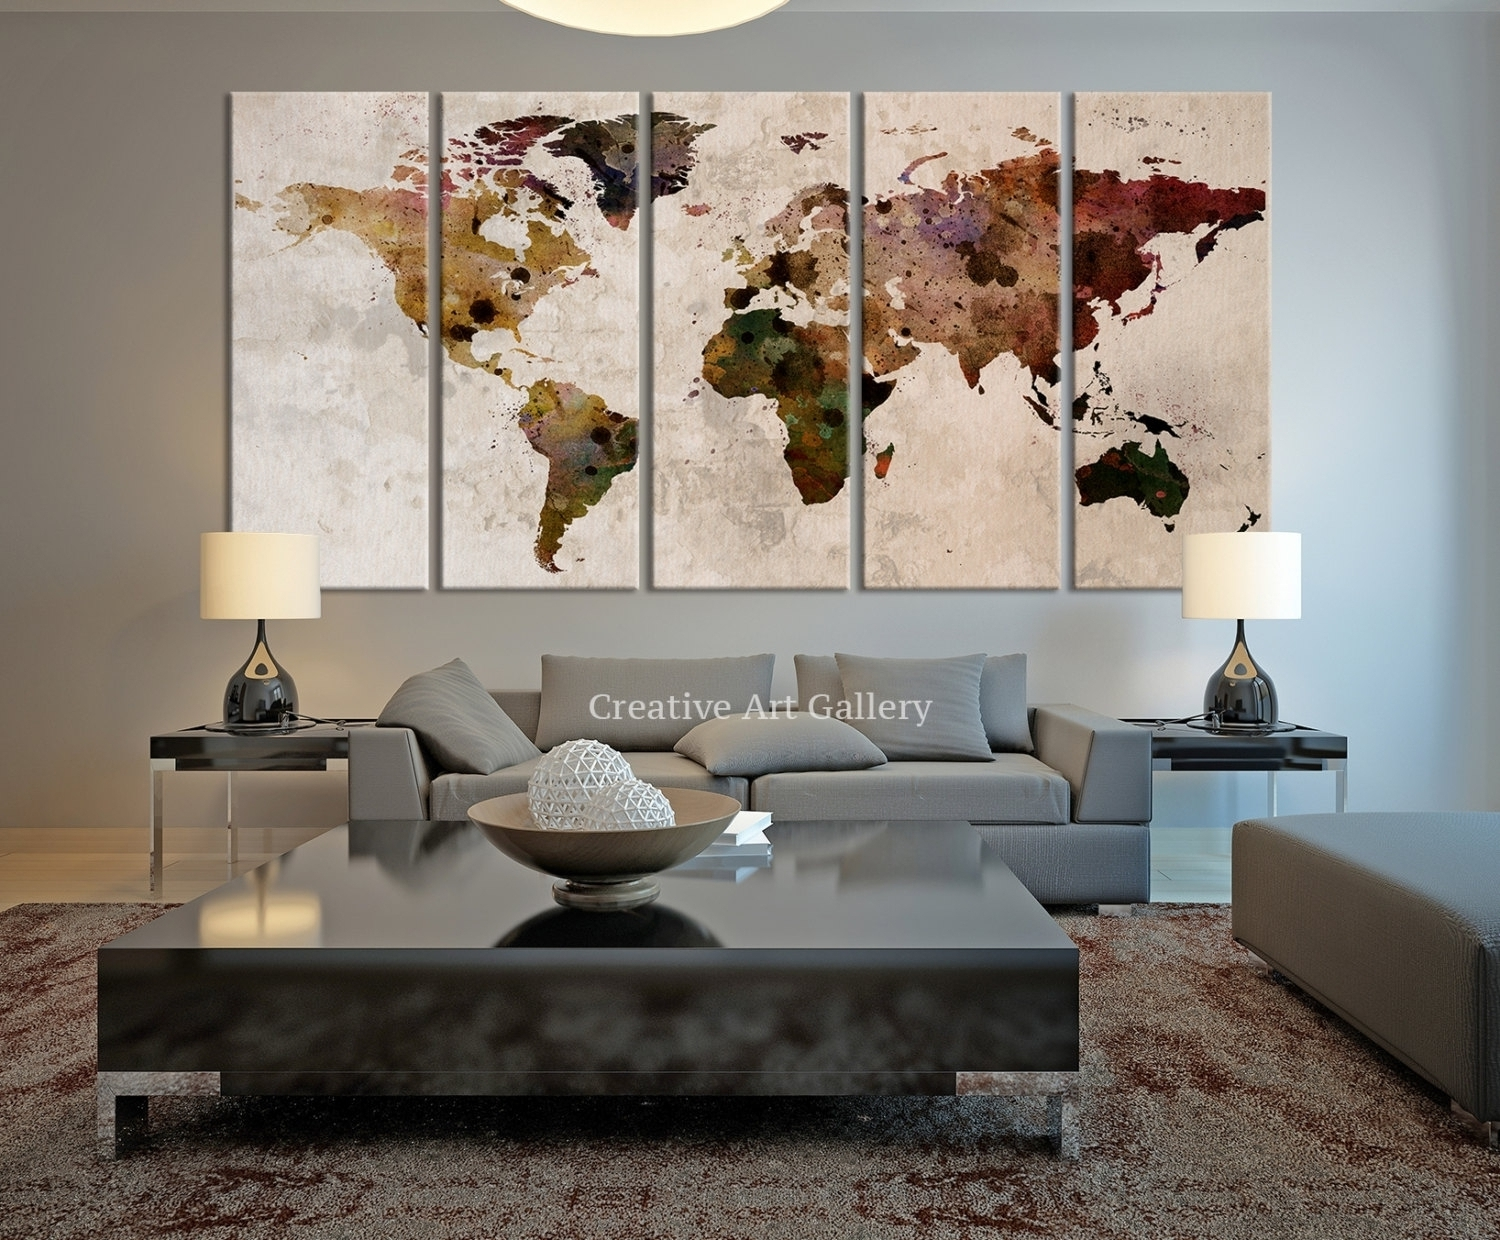 Large Rustic Wall Art Within Most Recently Released Rustic Wall Decor Ideas To Help You Add Rustic Beauty To Your (Gallery 16 of 20)